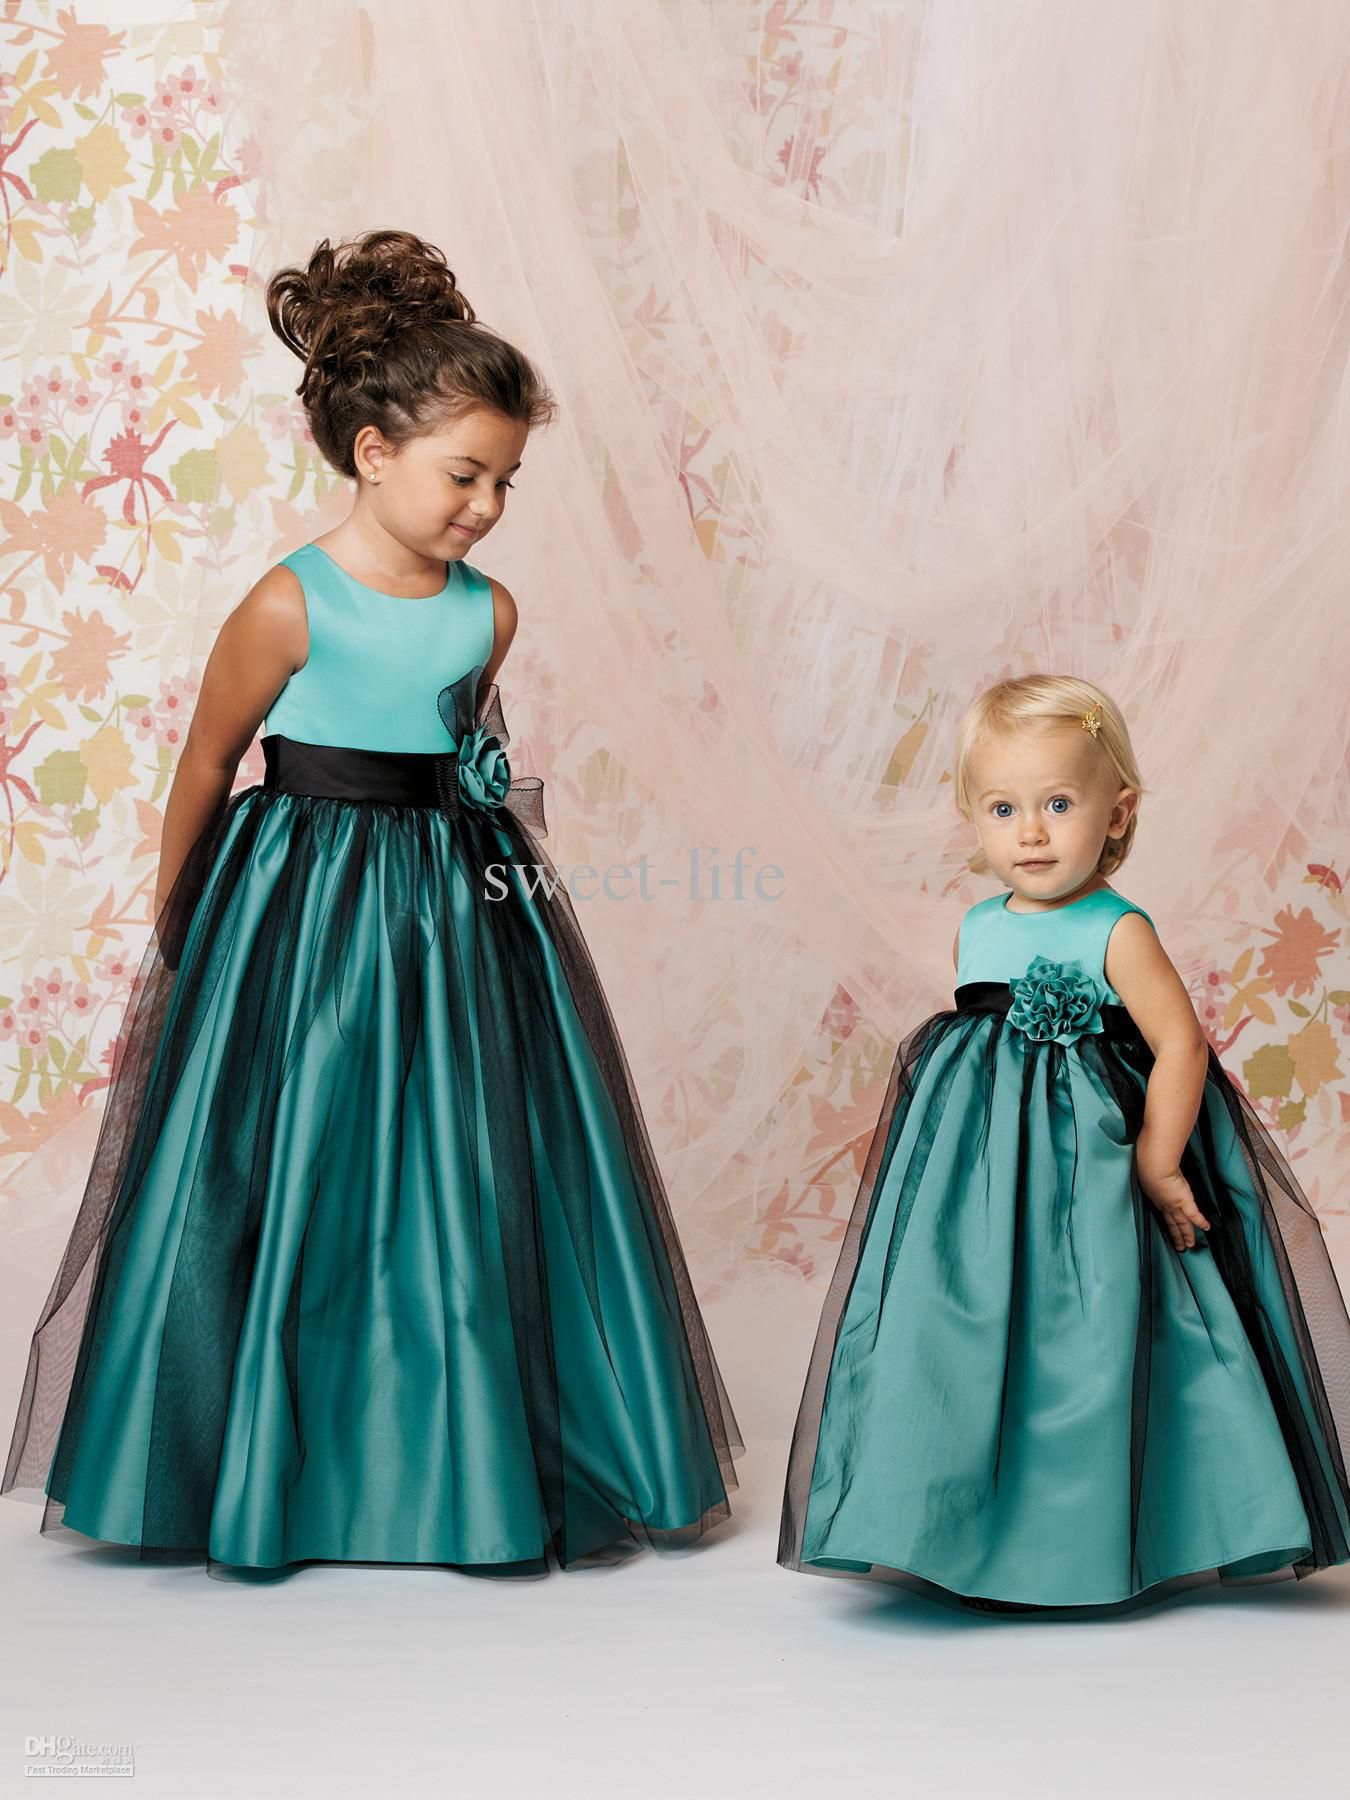 Wholesale flower girls dresses buy new style cute green cheap wholesale flower girls dresses buy new style cute green cheap flower girls dresses izmirmasajfo Images